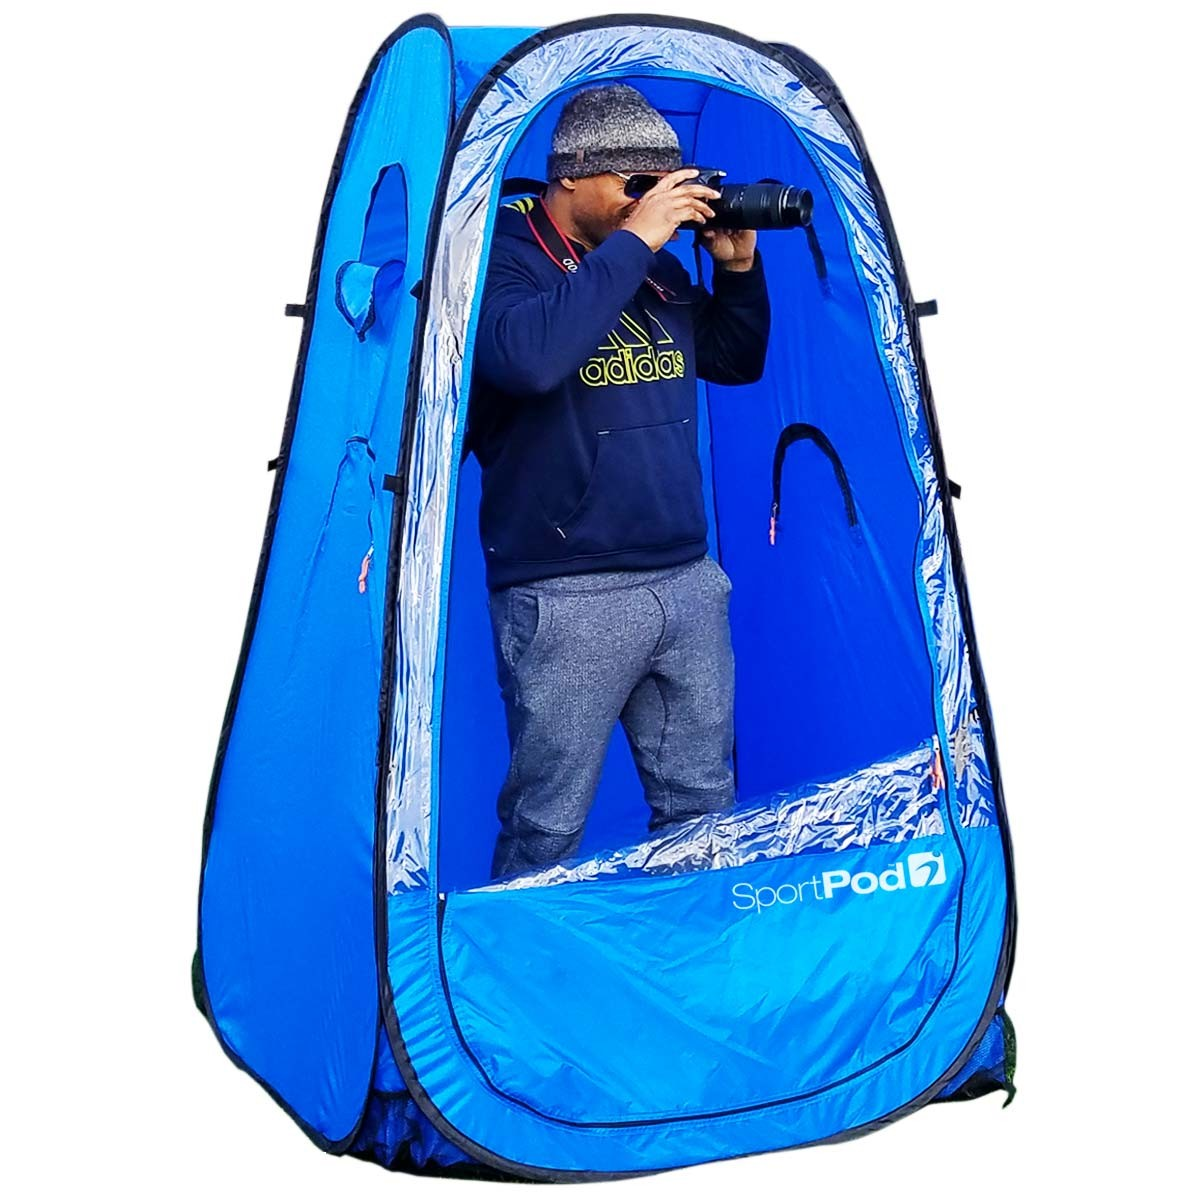 Actionpod Undercover All Weather Sportpod Pop Up Chair Tent